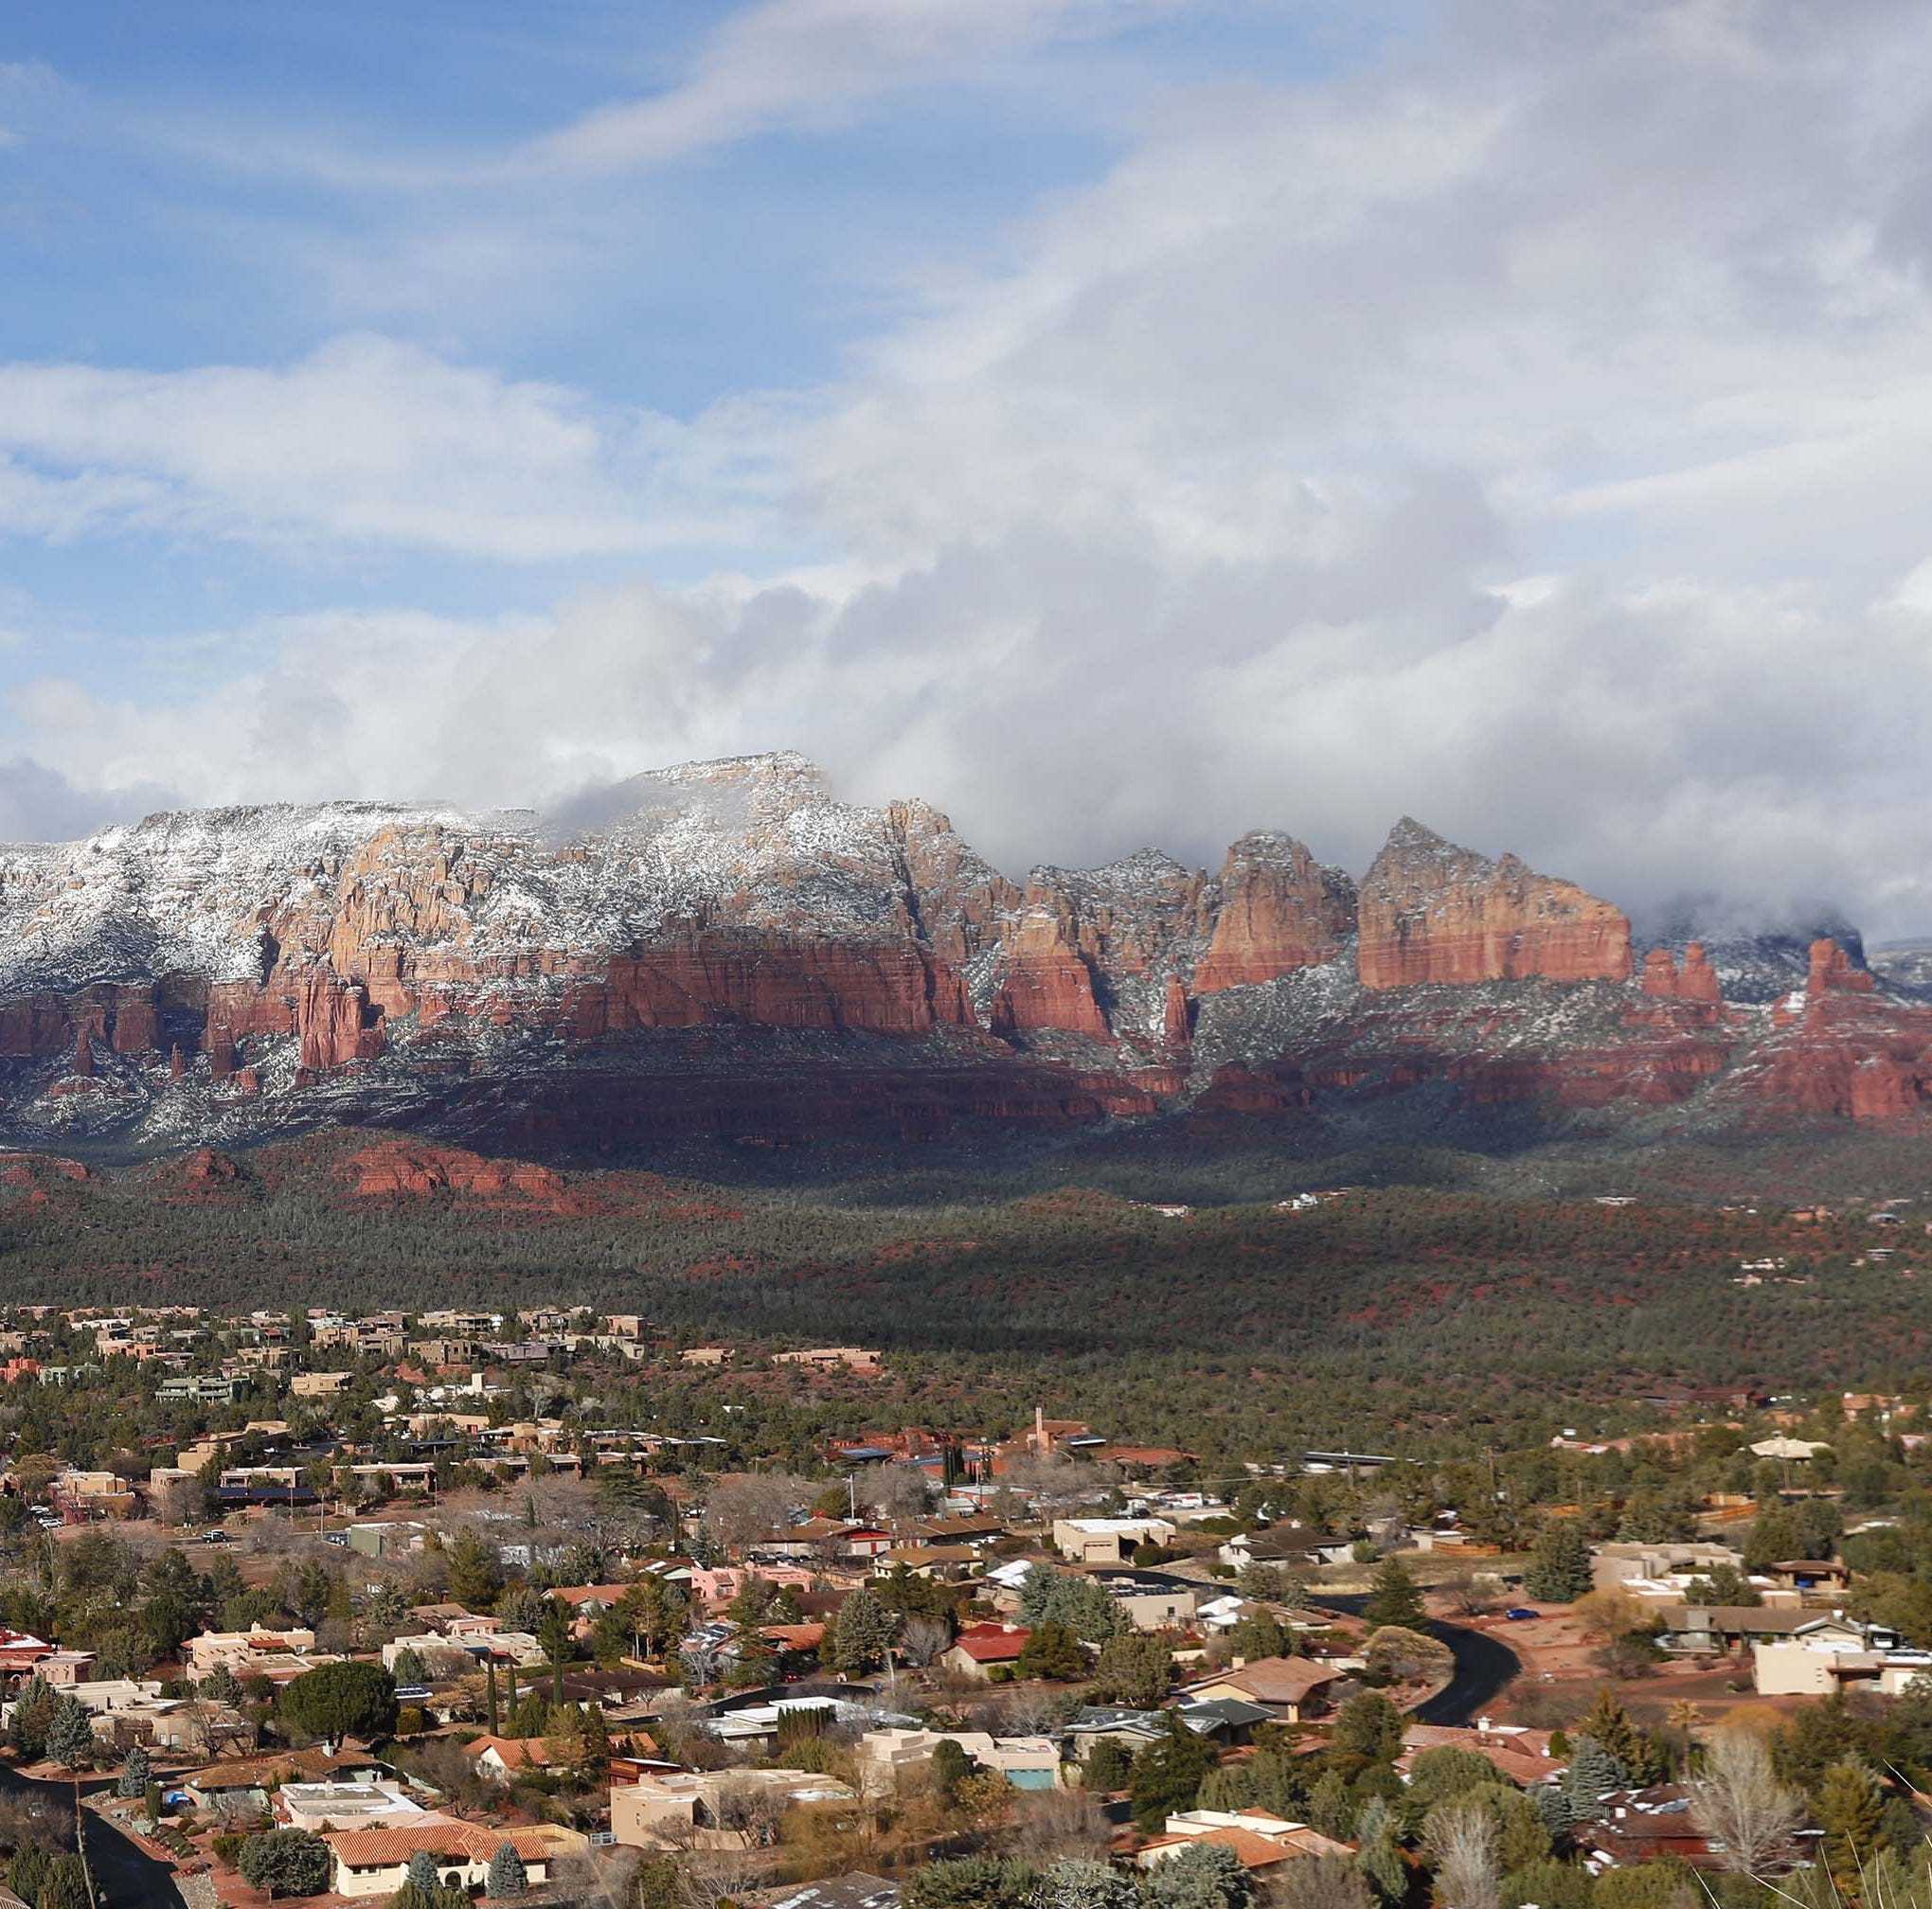 Winter storm to bring snow, rain to Arizona